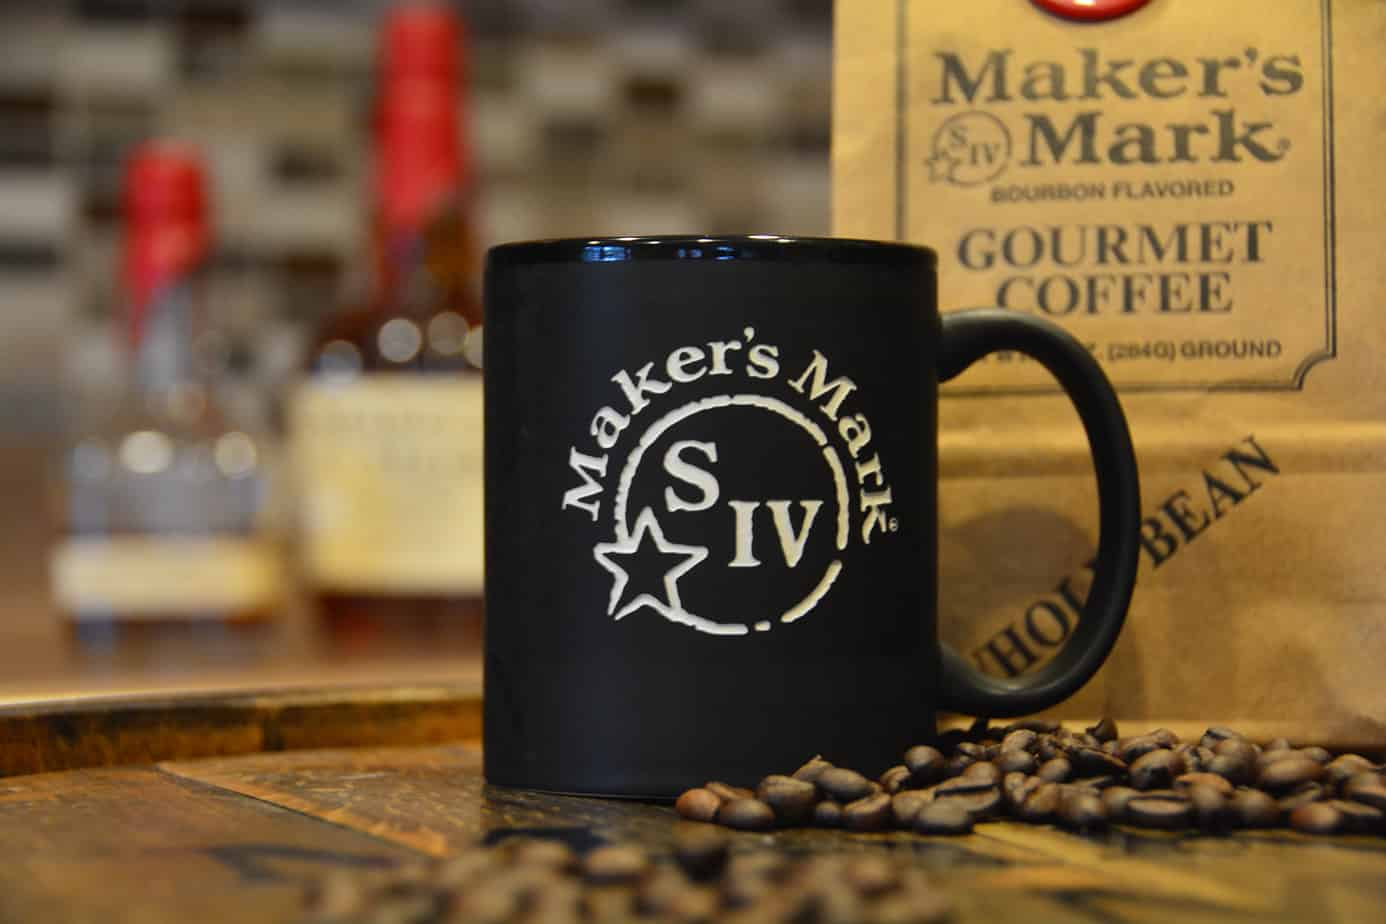 Close up picture of Makers Mark branded mug, next to coffee beans and branded gourmet coffee.